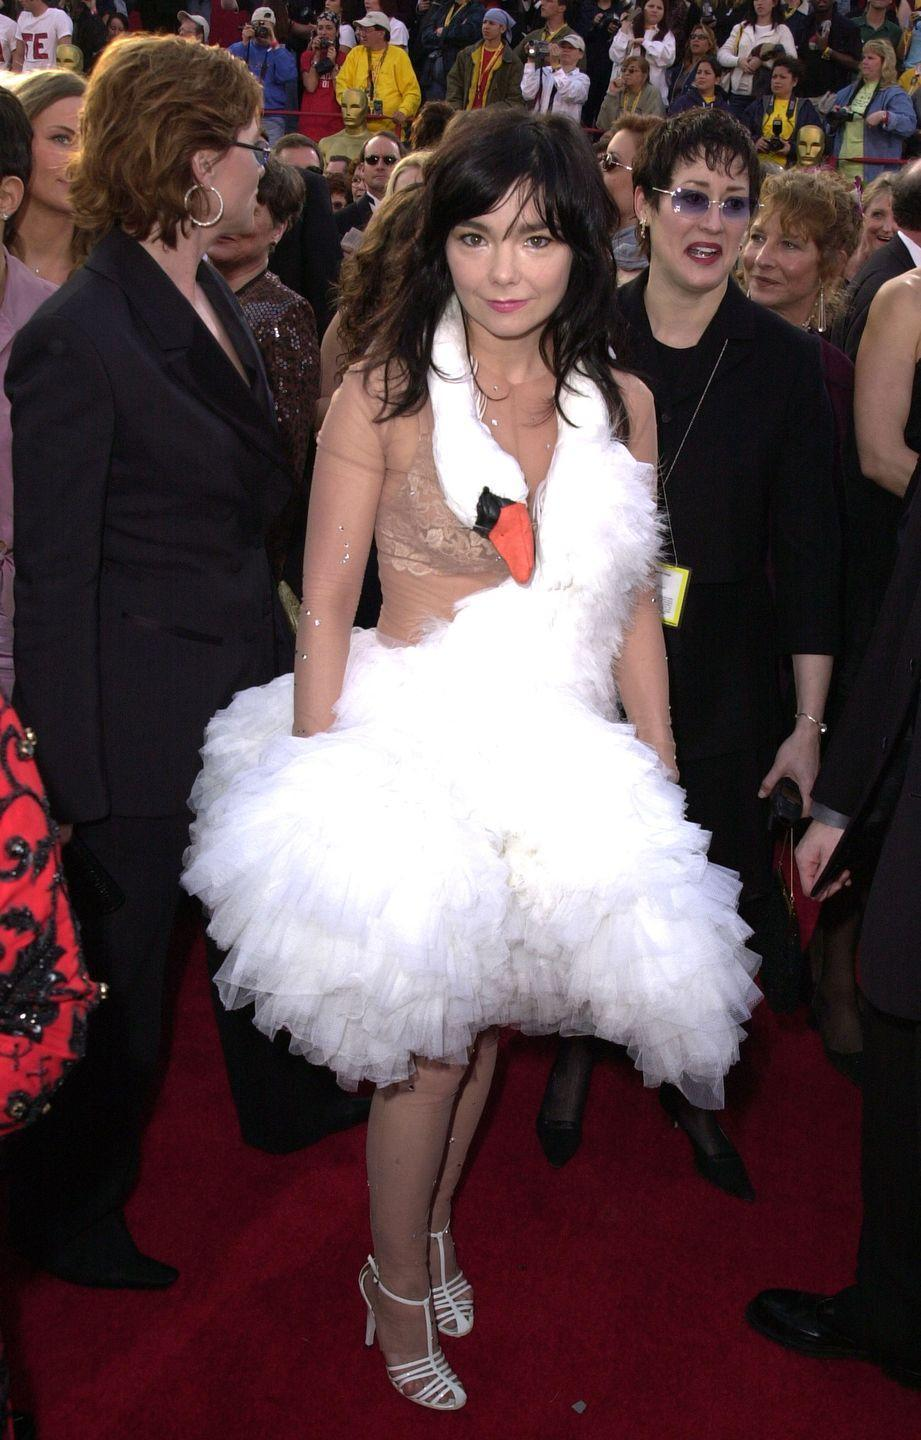 """<p>Ah, the swan dress. This was one of the more memorable and puzzling style choices ever to grace the red carpet. TV fashion critic Steven Cojocaru <a href=""""https://www.independent.co.uk/life-style/fashion/features/bjork-s-infamous-swan-dress-now-honoured-moma-museum-almost-15-years-later-a132236.html"""" rel=""""nofollow noopener"""" target=""""_blank"""" data-ylk=""""slk:reportedly said"""" class=""""link rapid-noclick-resp"""">reportedly said</a> it was """"one of the dumbest things I've ever seen"""" and Joan Rivers said that Björk """"should be put in an asylum."""" But as <a href=""""https://www.vice.com/en/article/rdxd7r/bjrk-the-history-and-style-of-a-music-maverick"""" rel=""""nofollow noopener"""" target=""""_blank"""" data-ylk=""""slk:Björk herself"""" class=""""link rapid-noclick-resp"""">Björk herself</a> said: """"It's just a dress.""""</p>"""